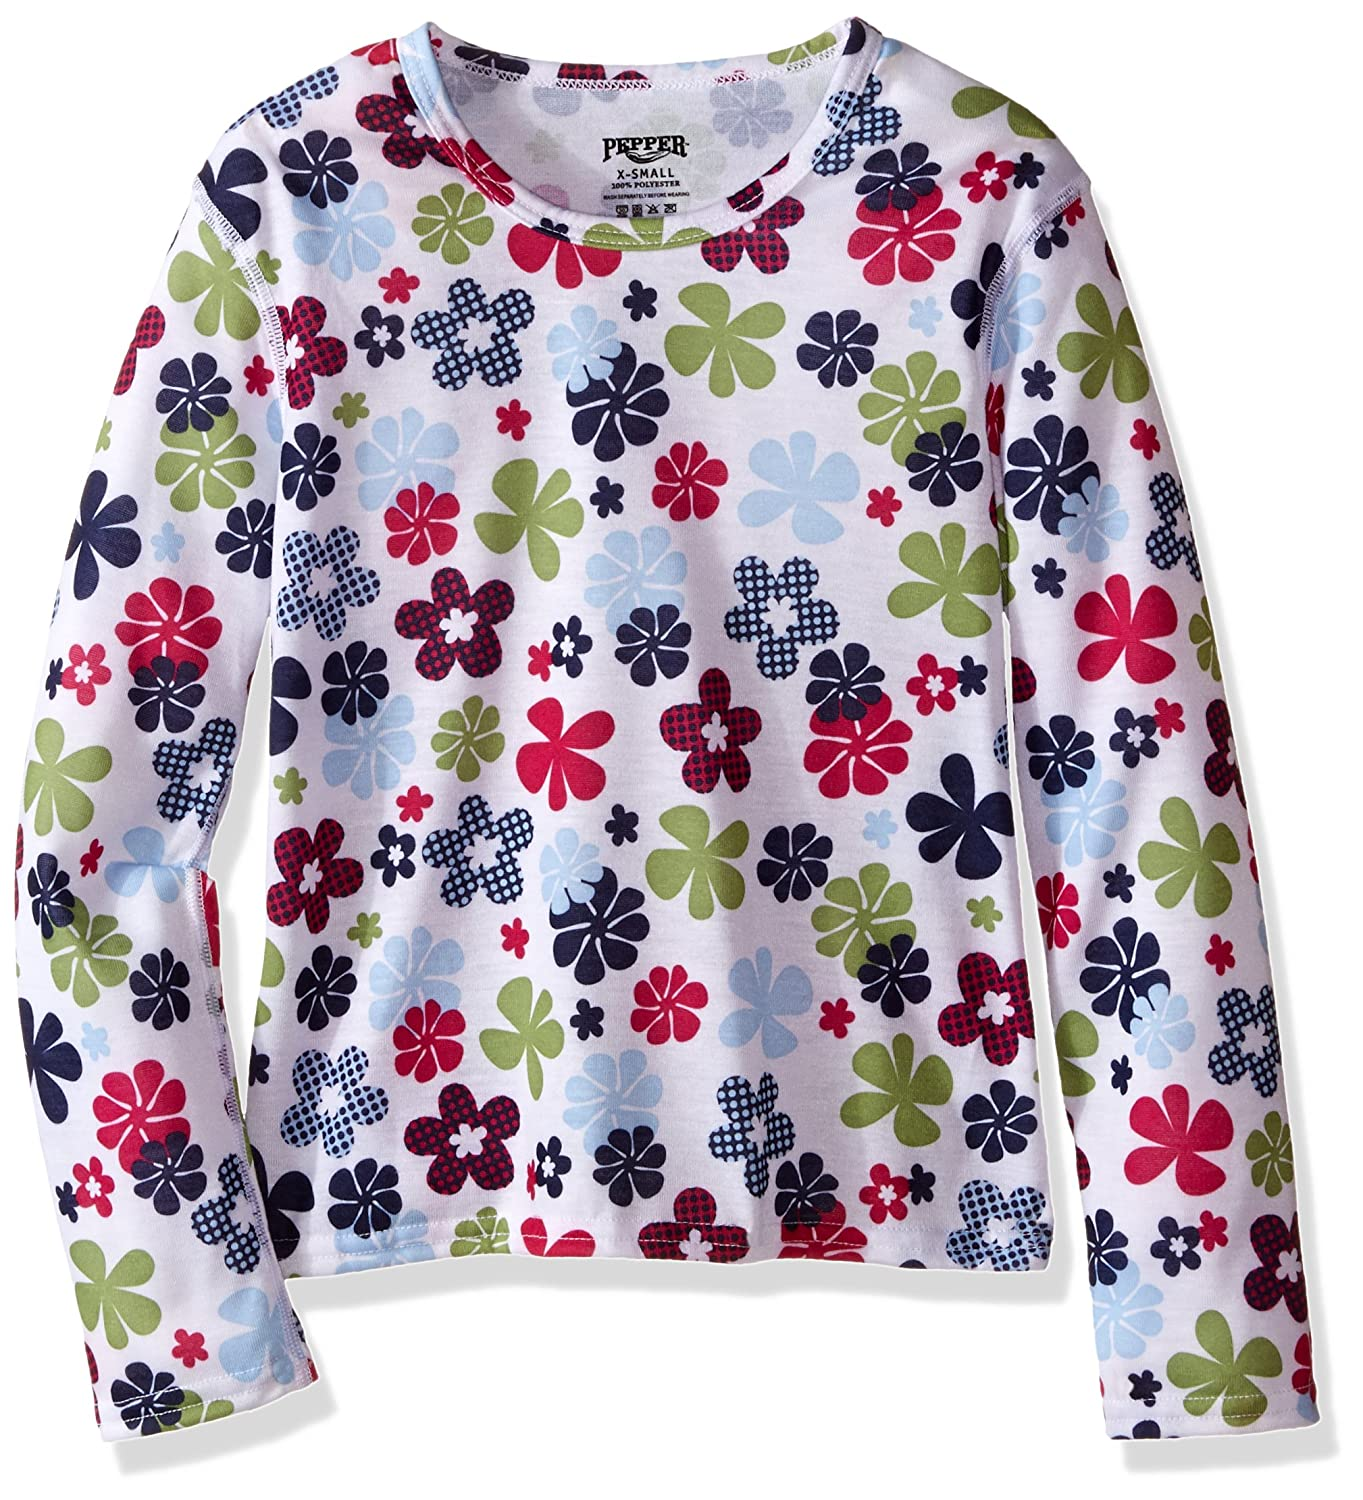 Large Flower Power Hot Chillys Youth Pepper Skins Print Crewneck